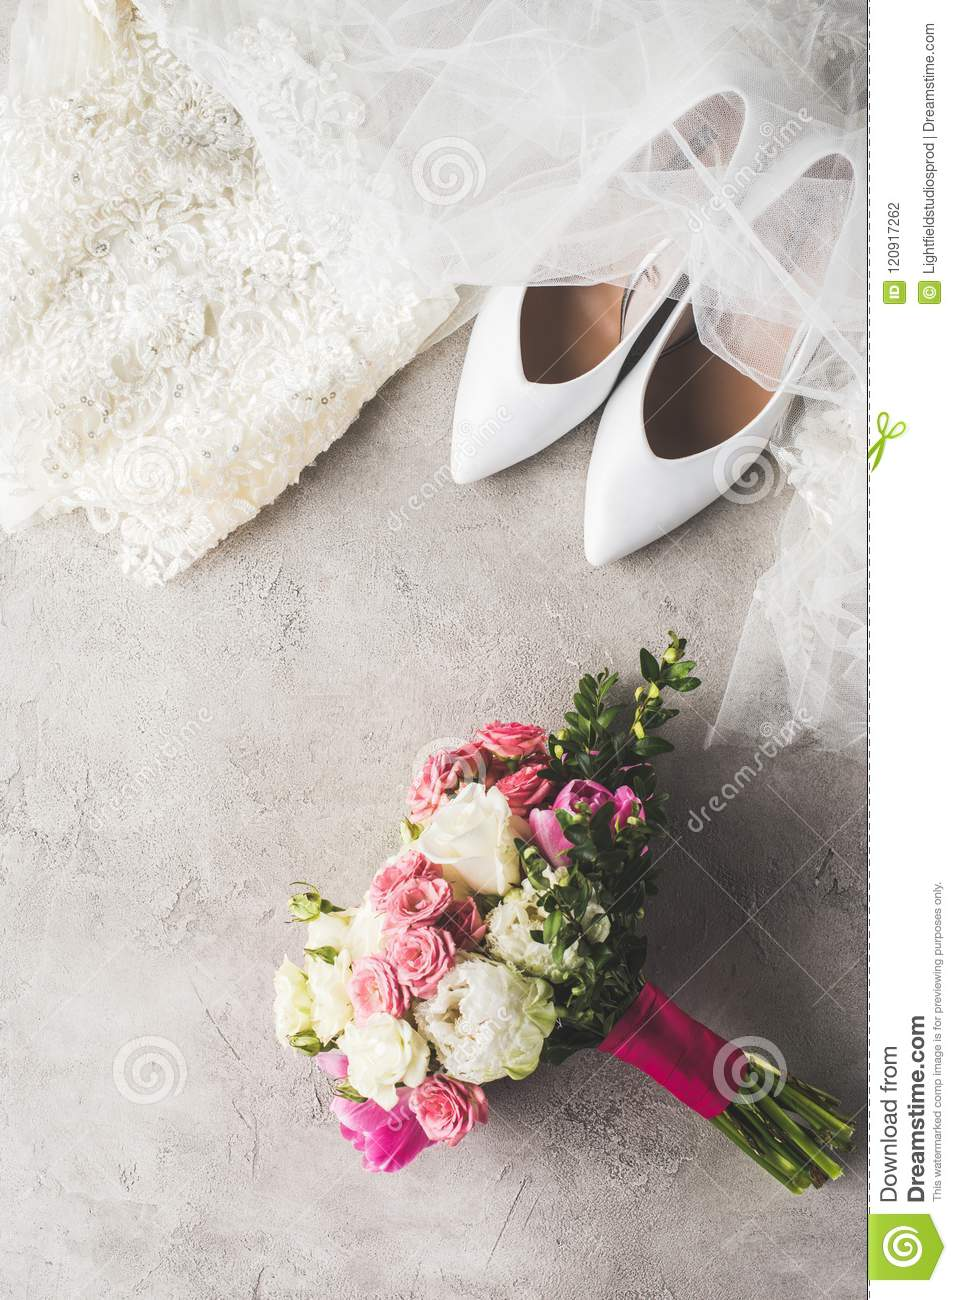 Top View Of Wedding Dress Shoes And Bouquet Stock Photo Image